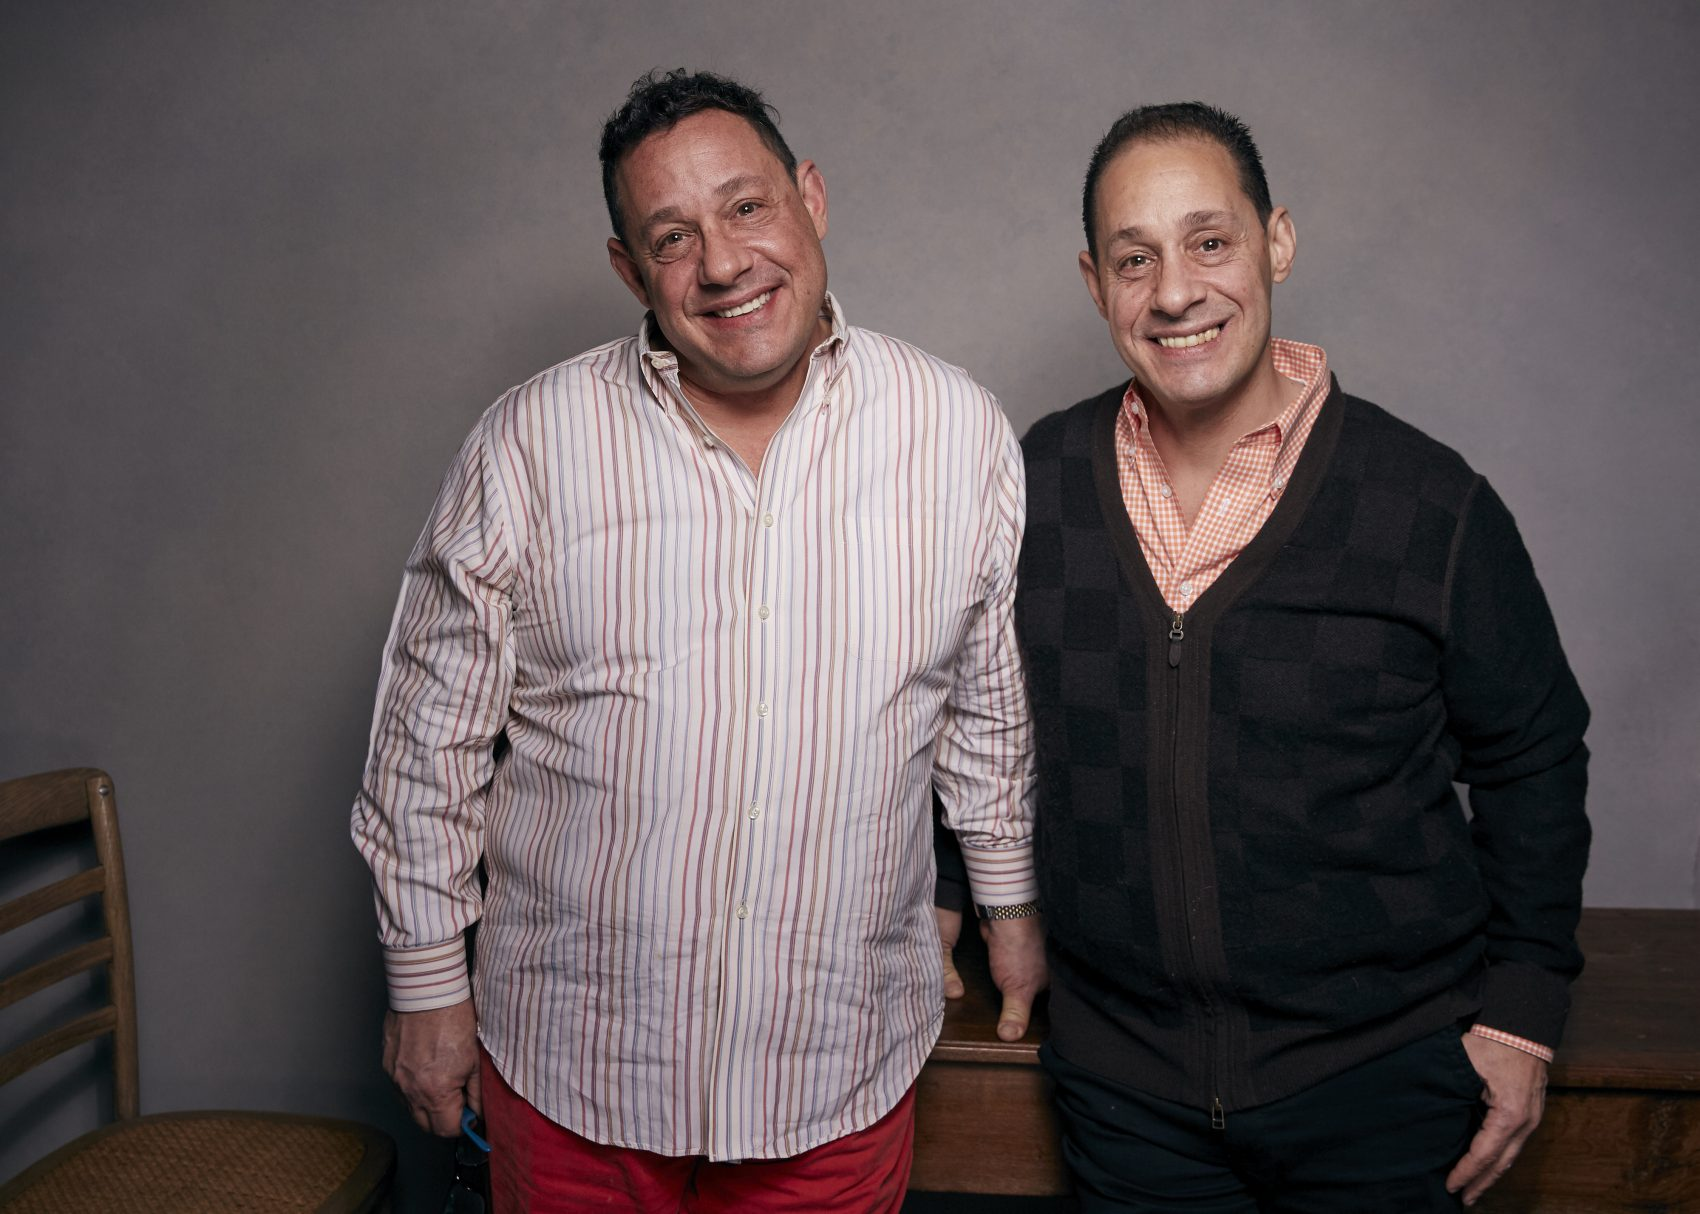 """David Kellman, left, and Robert Shafran pose for a portrait to promote the film, """"Three Identical Strangers"""", at the Music Lodge during the Sundance Film Festival on Friday, Jan. 19, 2018, in Park City, Utah. (Taylor Jewell/Invision/AP)"""